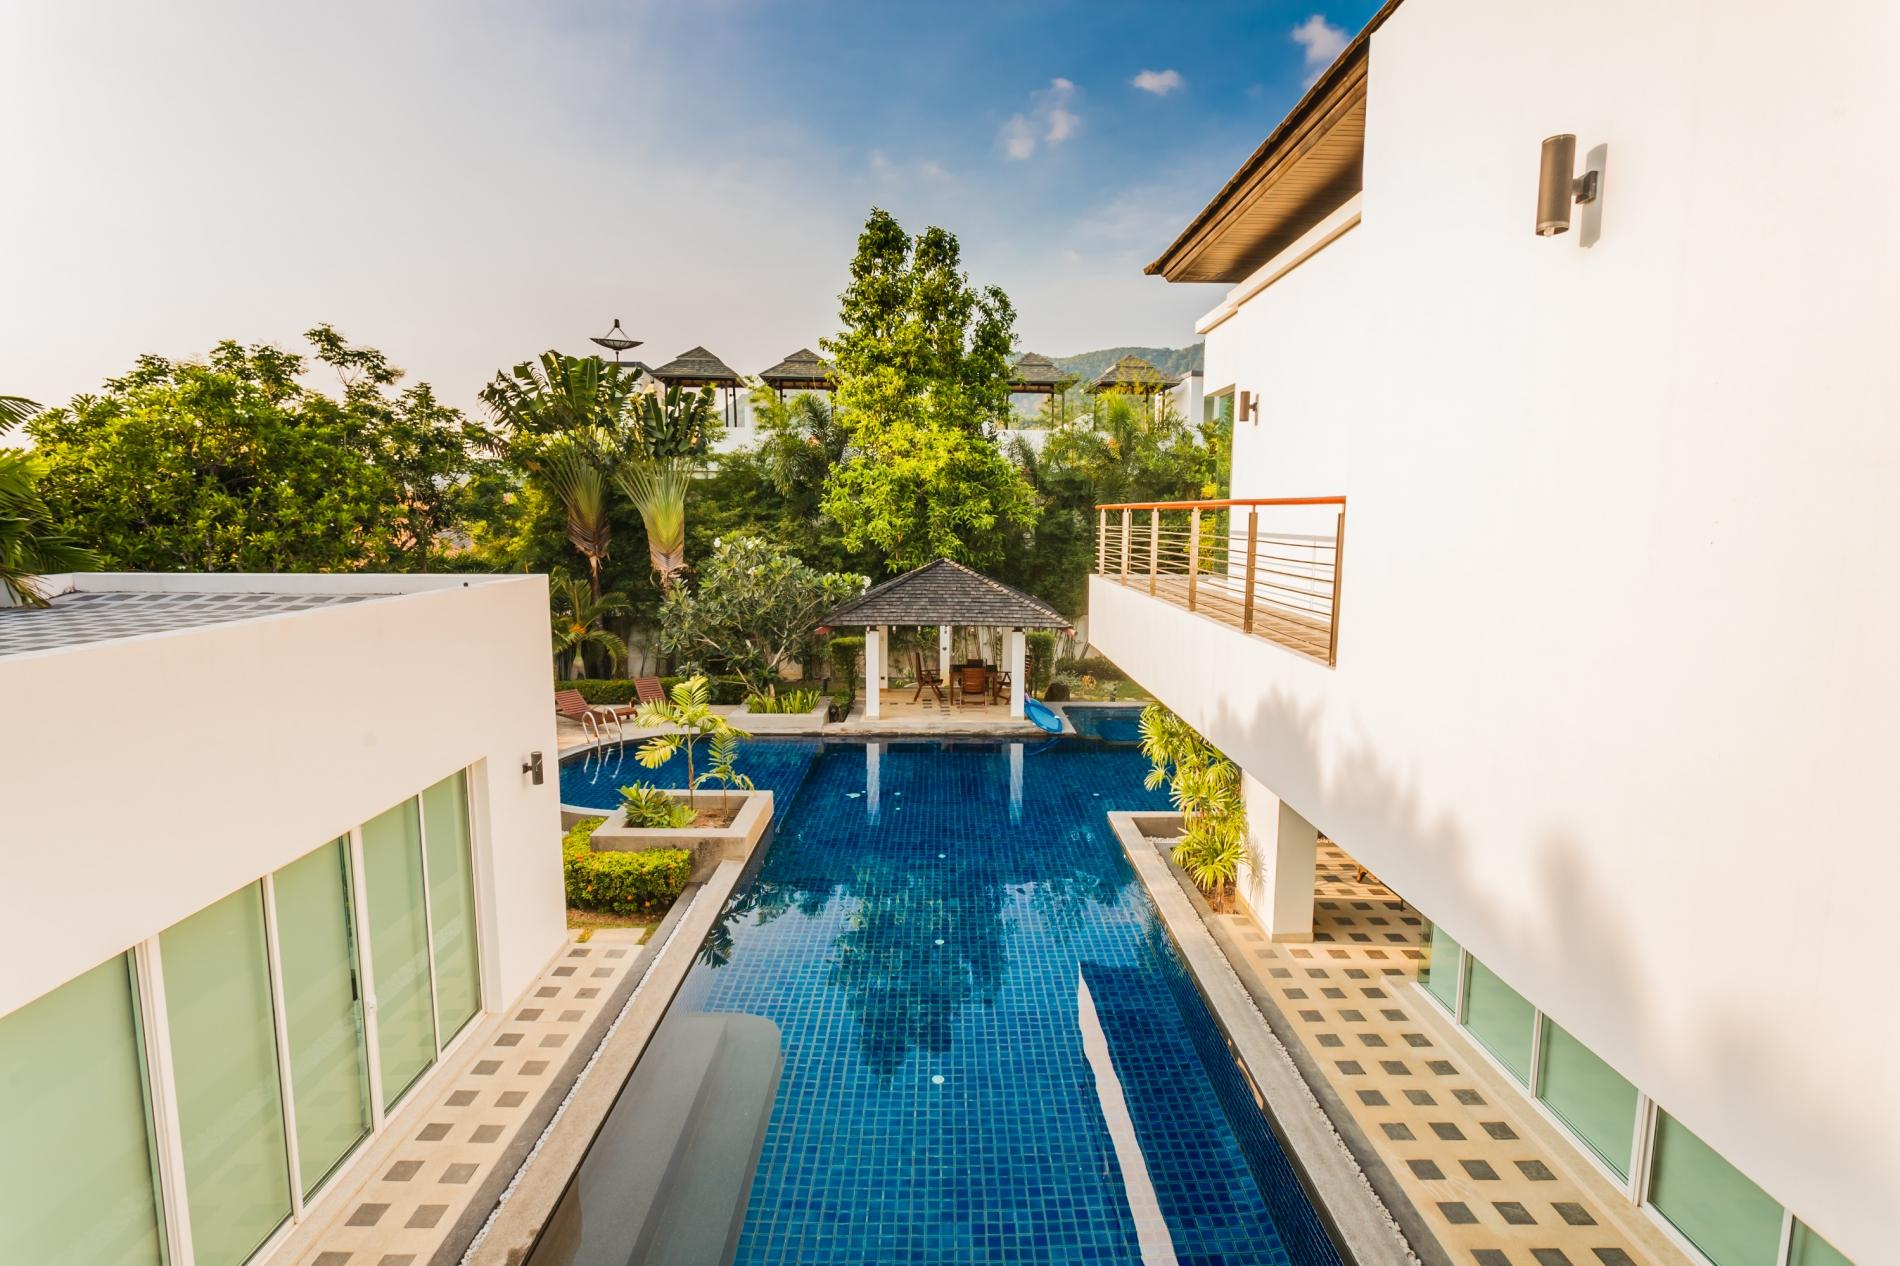 Apartment Kyerra Villa -  Giant private pool in Kamala  pool table  ping pong table  photo 20384623